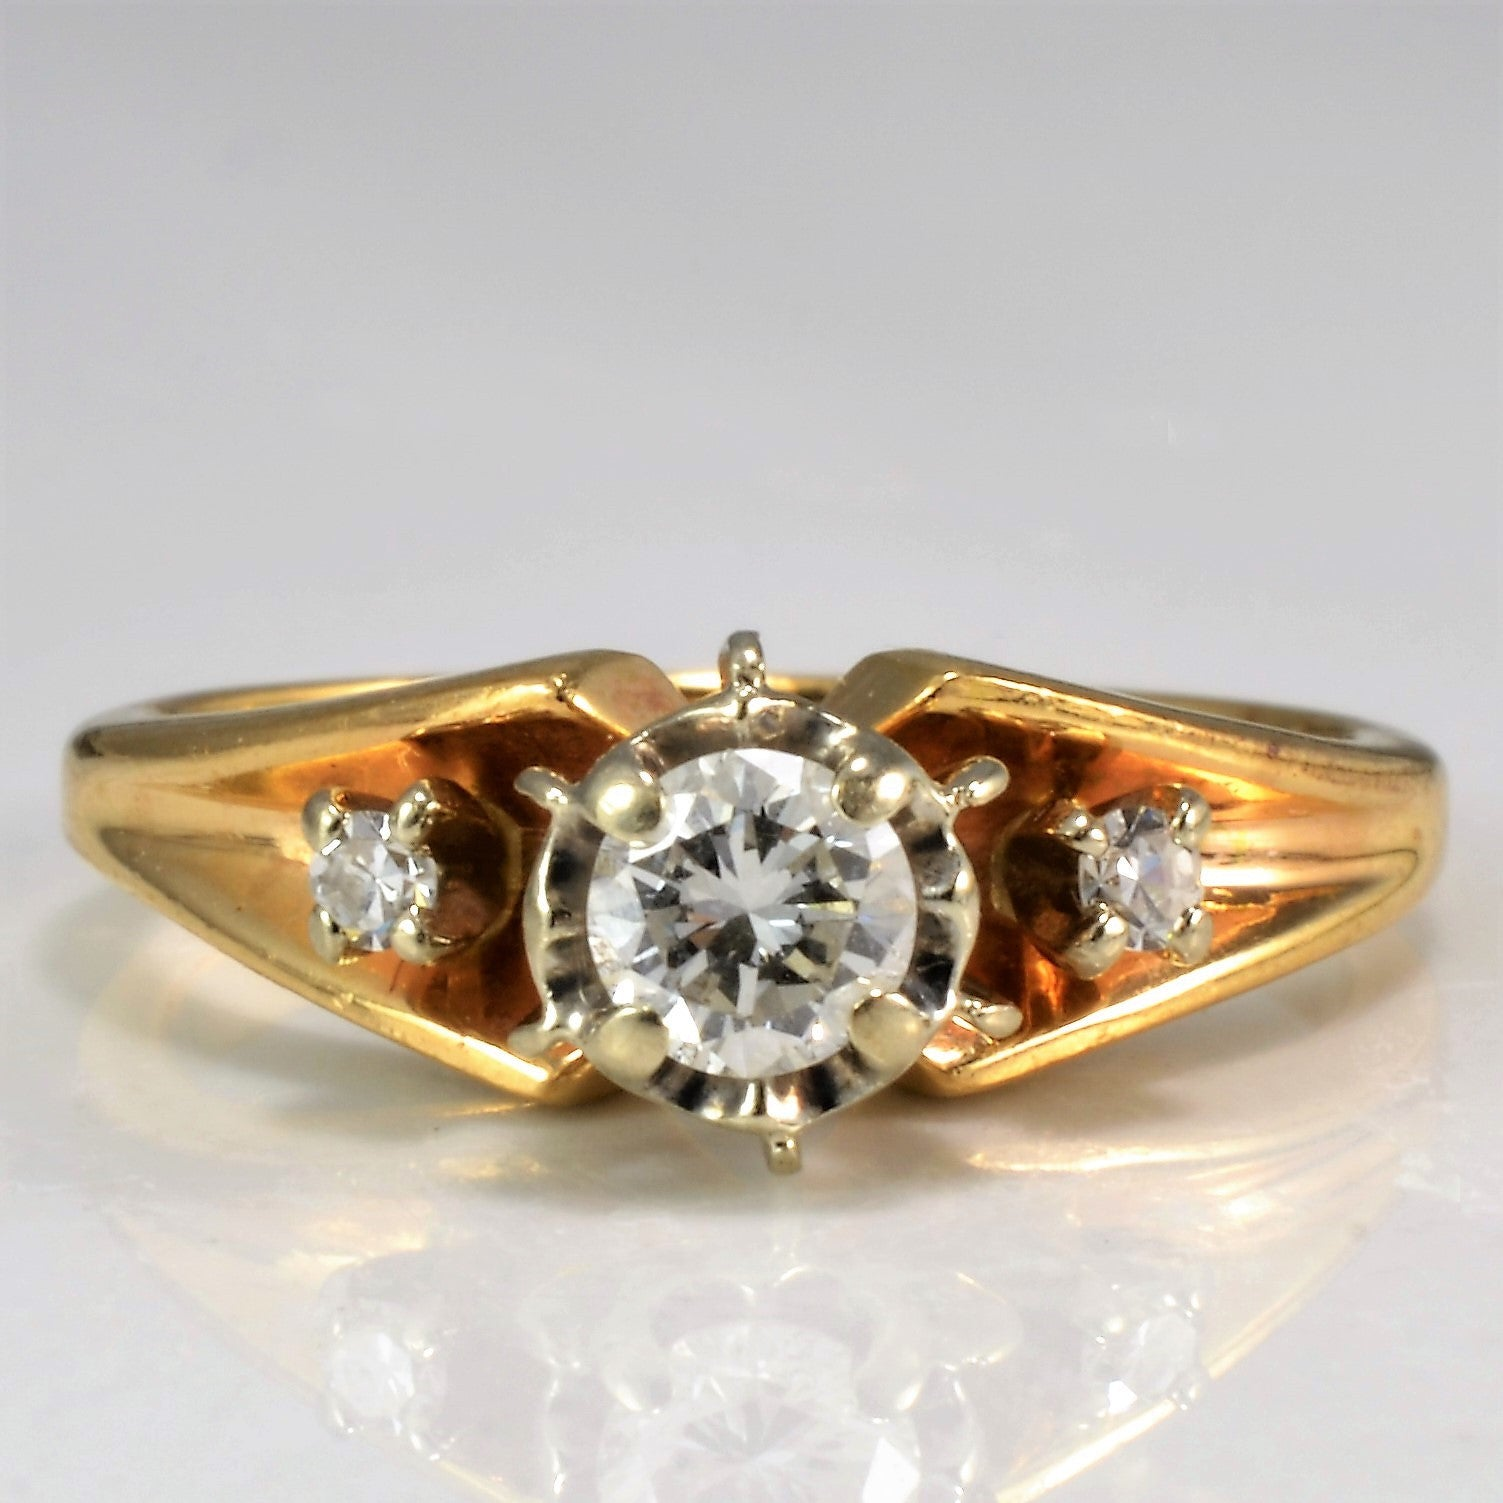 Petite High Set Three Stone Diamond Ring | 0.21 ctw, SZ 3.5 |